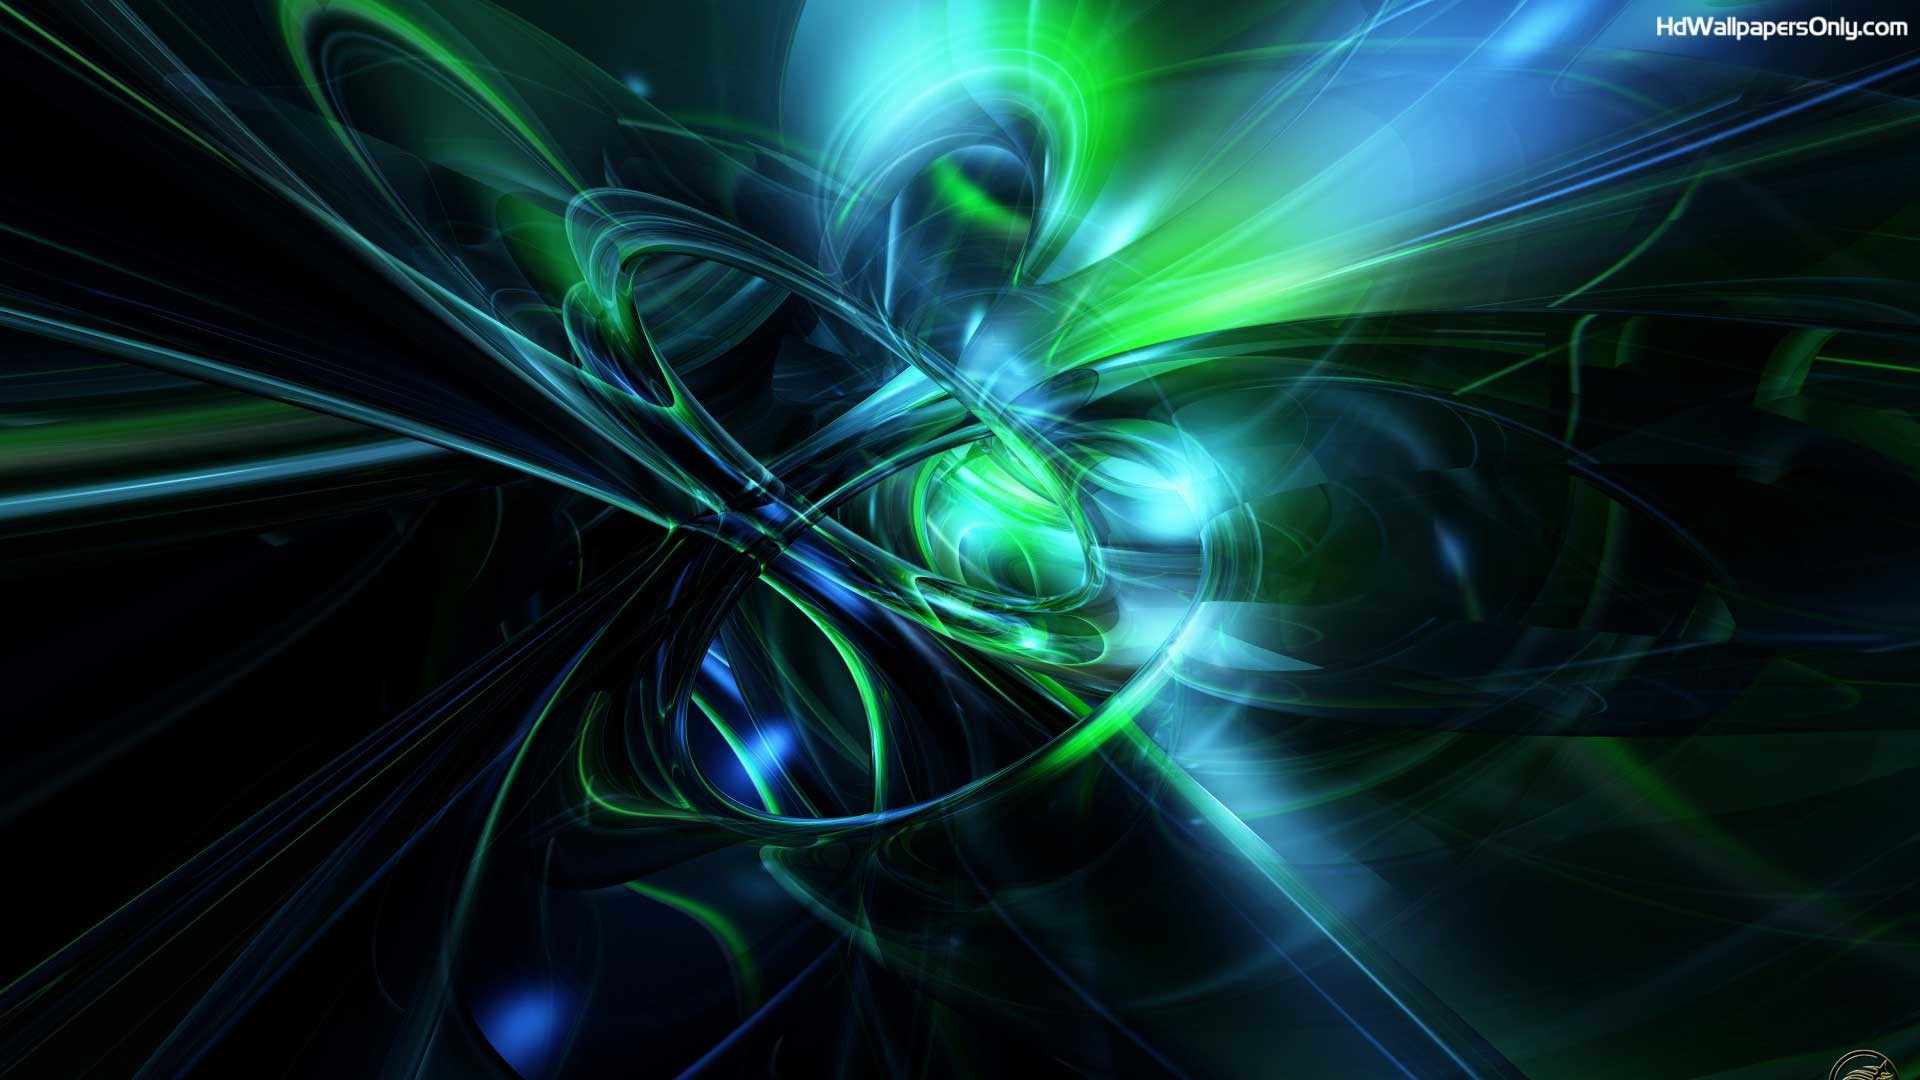 HD Backgrounds 1080P Cool Designs   Full Hd Wallpapers 1080p